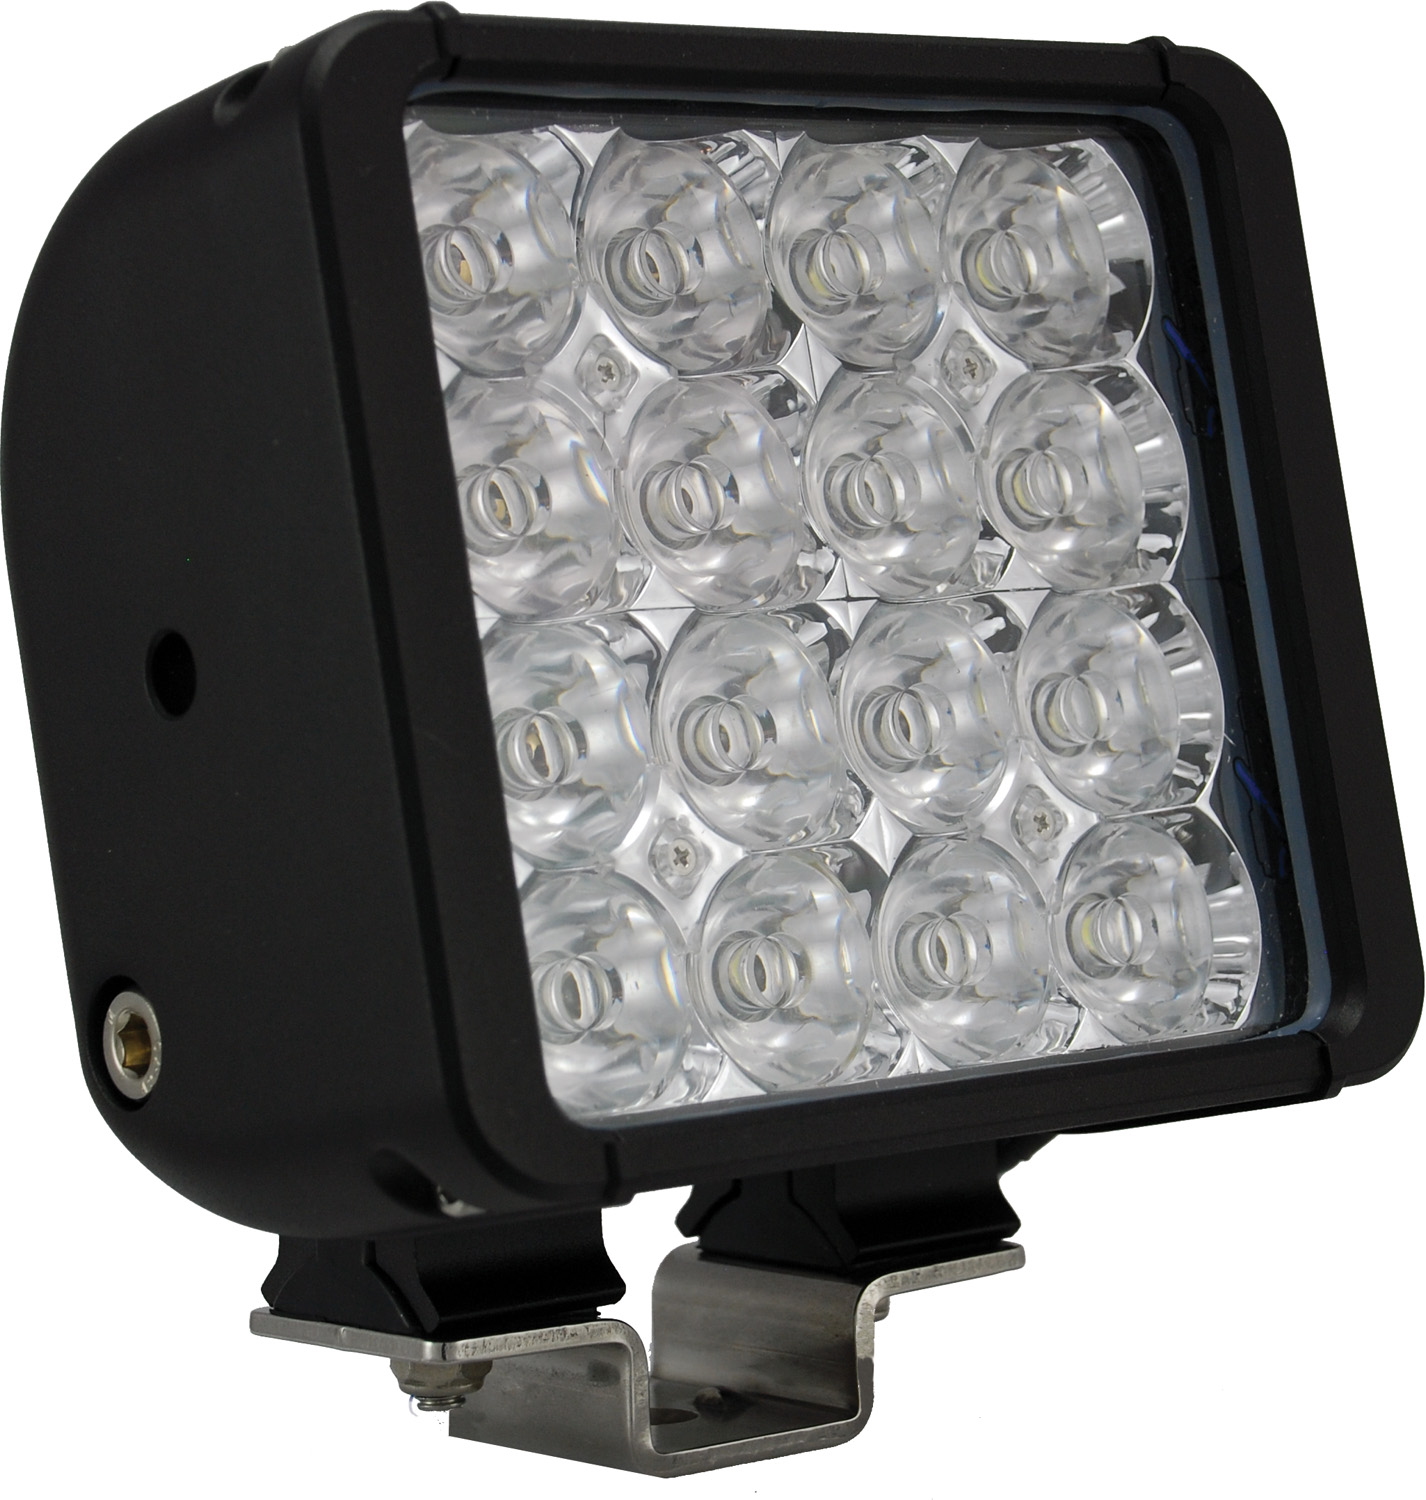 6 inch XMITTER DOUBLE BAR BLACK 16 3W LED'S FLOOD